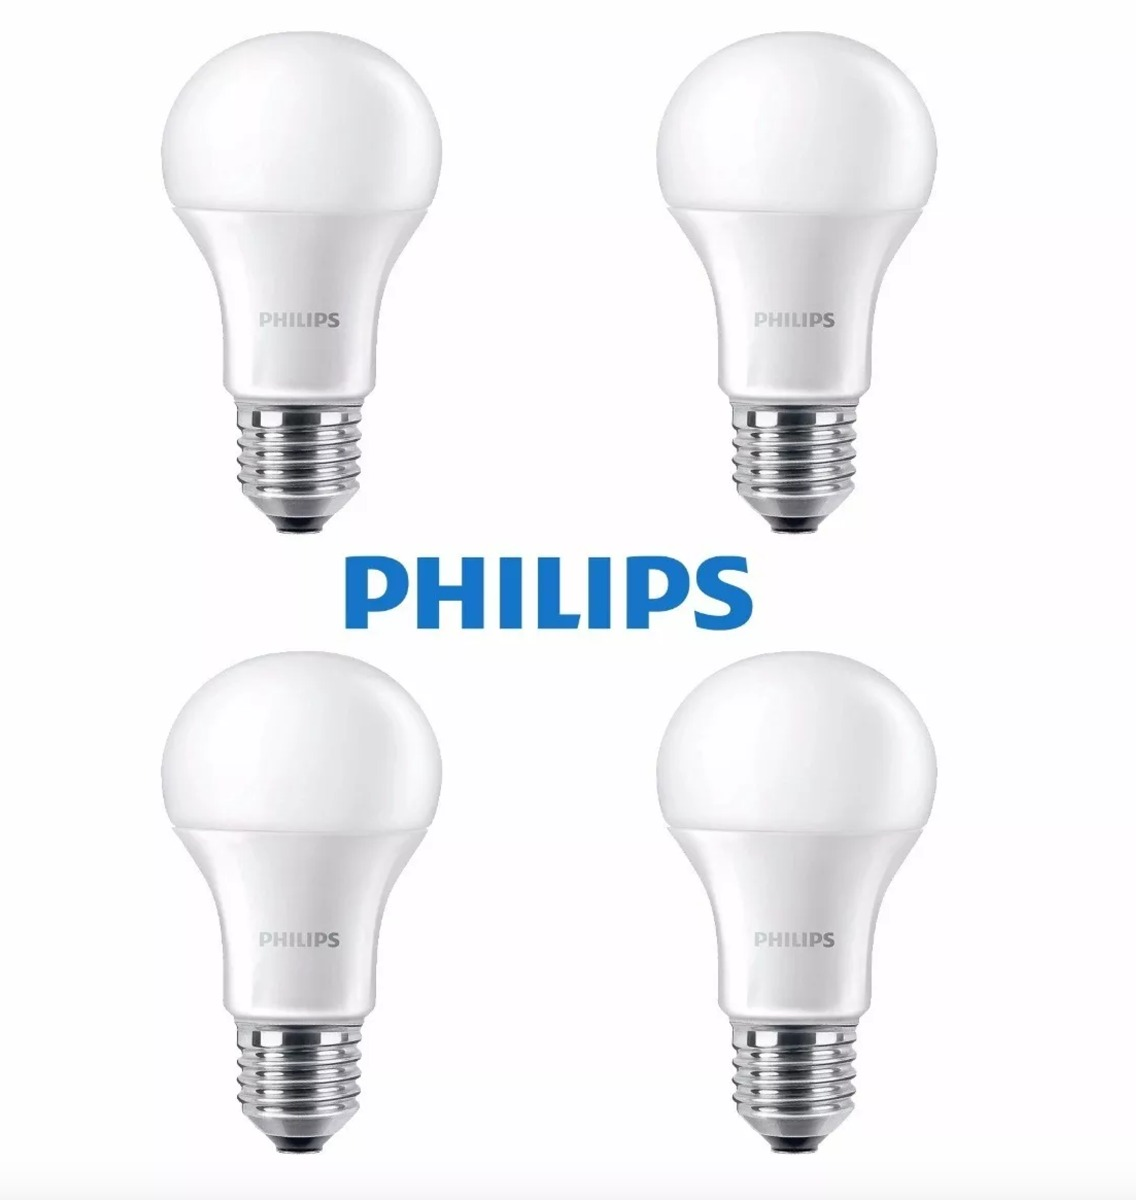 Philips 4 Equivalente X Led 5w 75w Pack 10 Lamparas A lJ1cFK